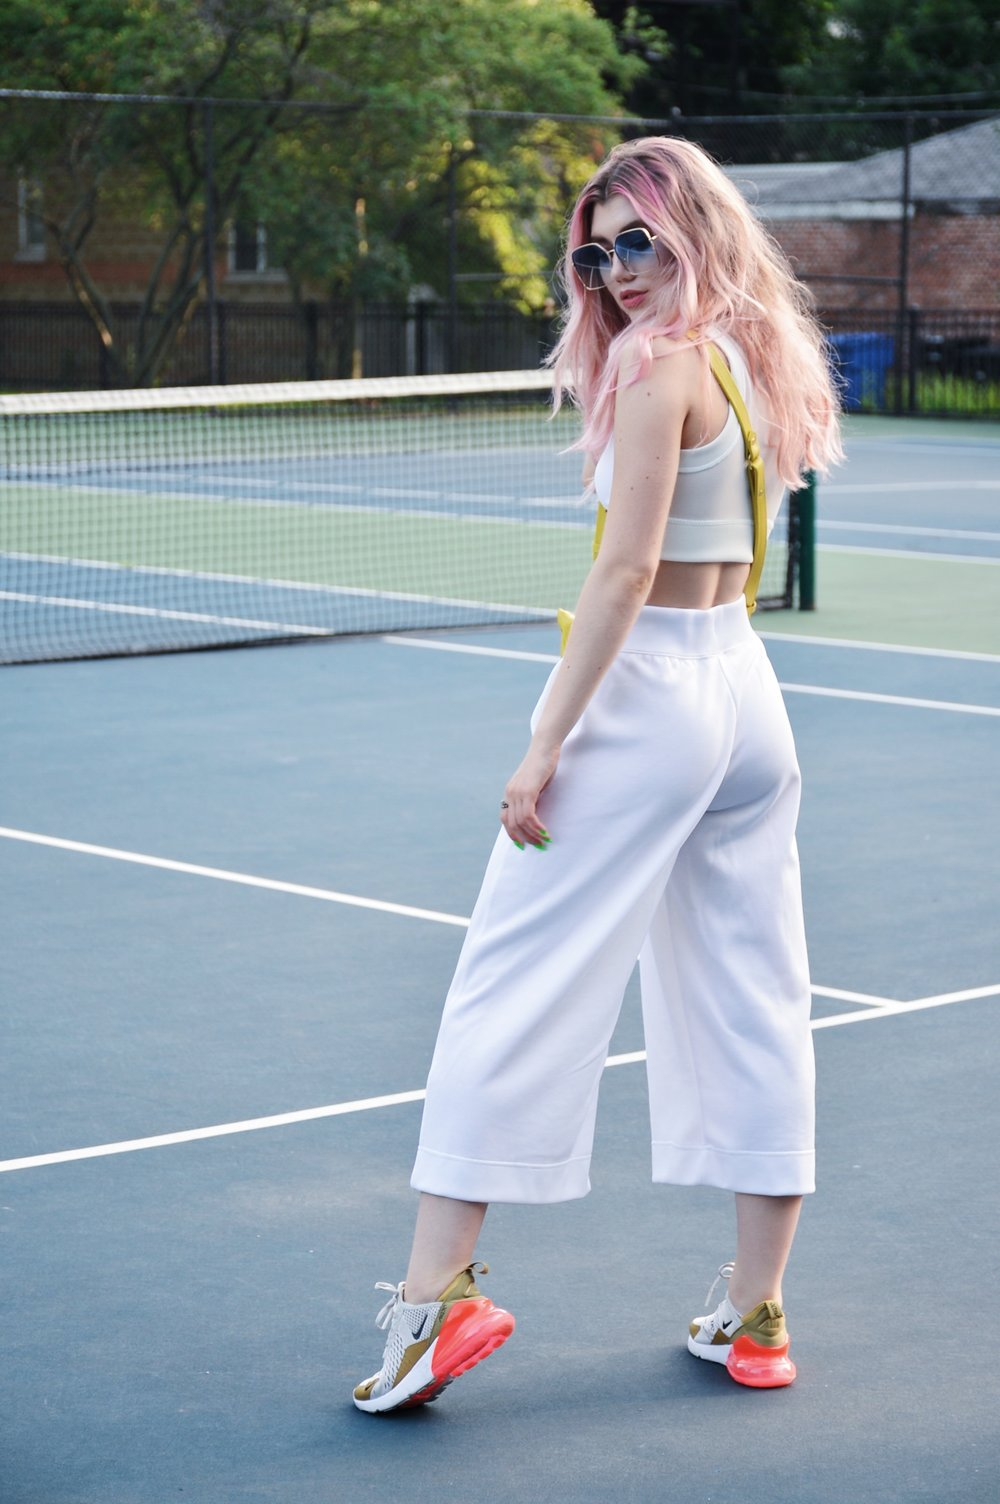 nike-airmax-270s-all-white-outfit.JPG